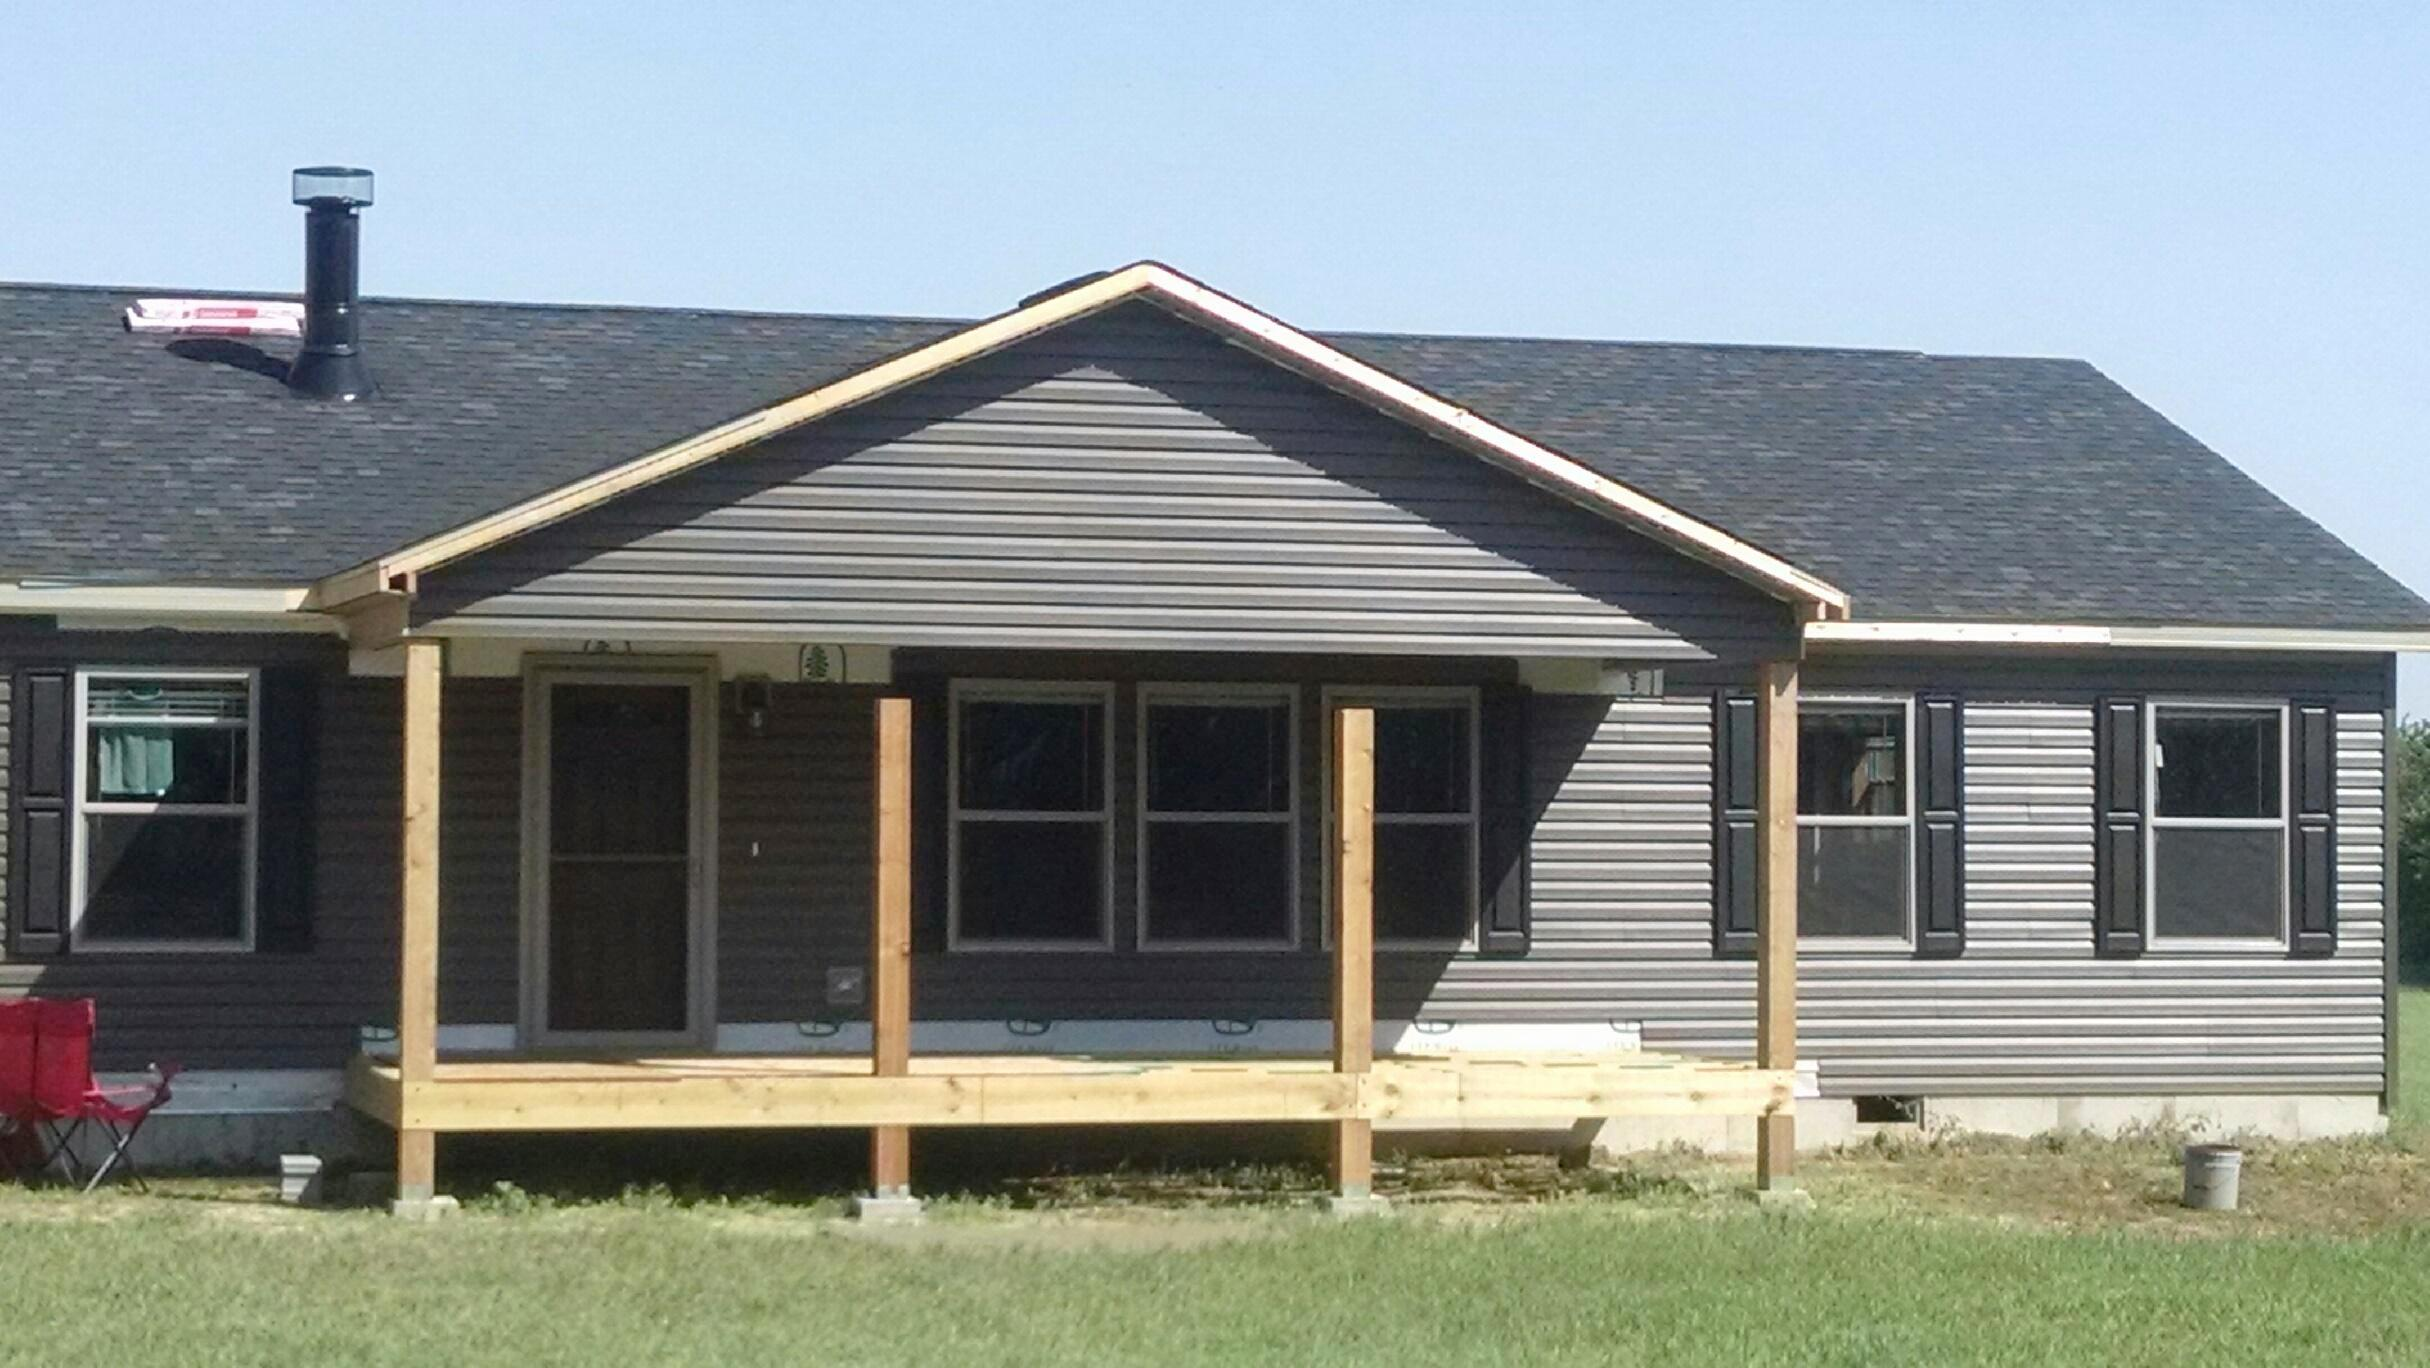 Covered Porch built on site